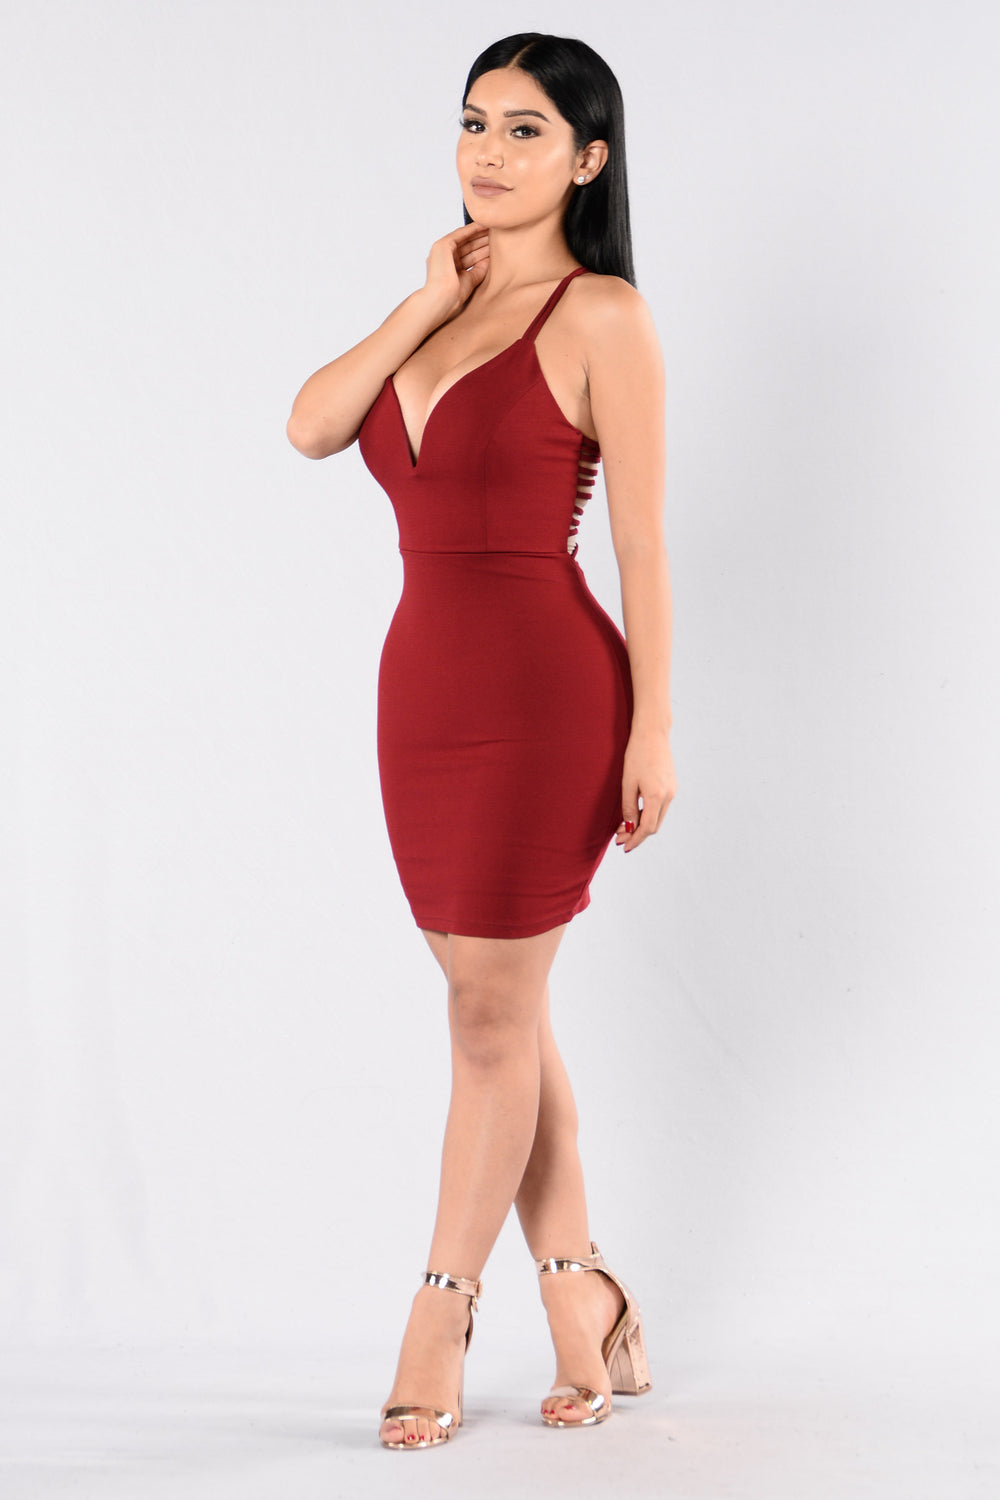 Trap Queen Dress - Burgundy